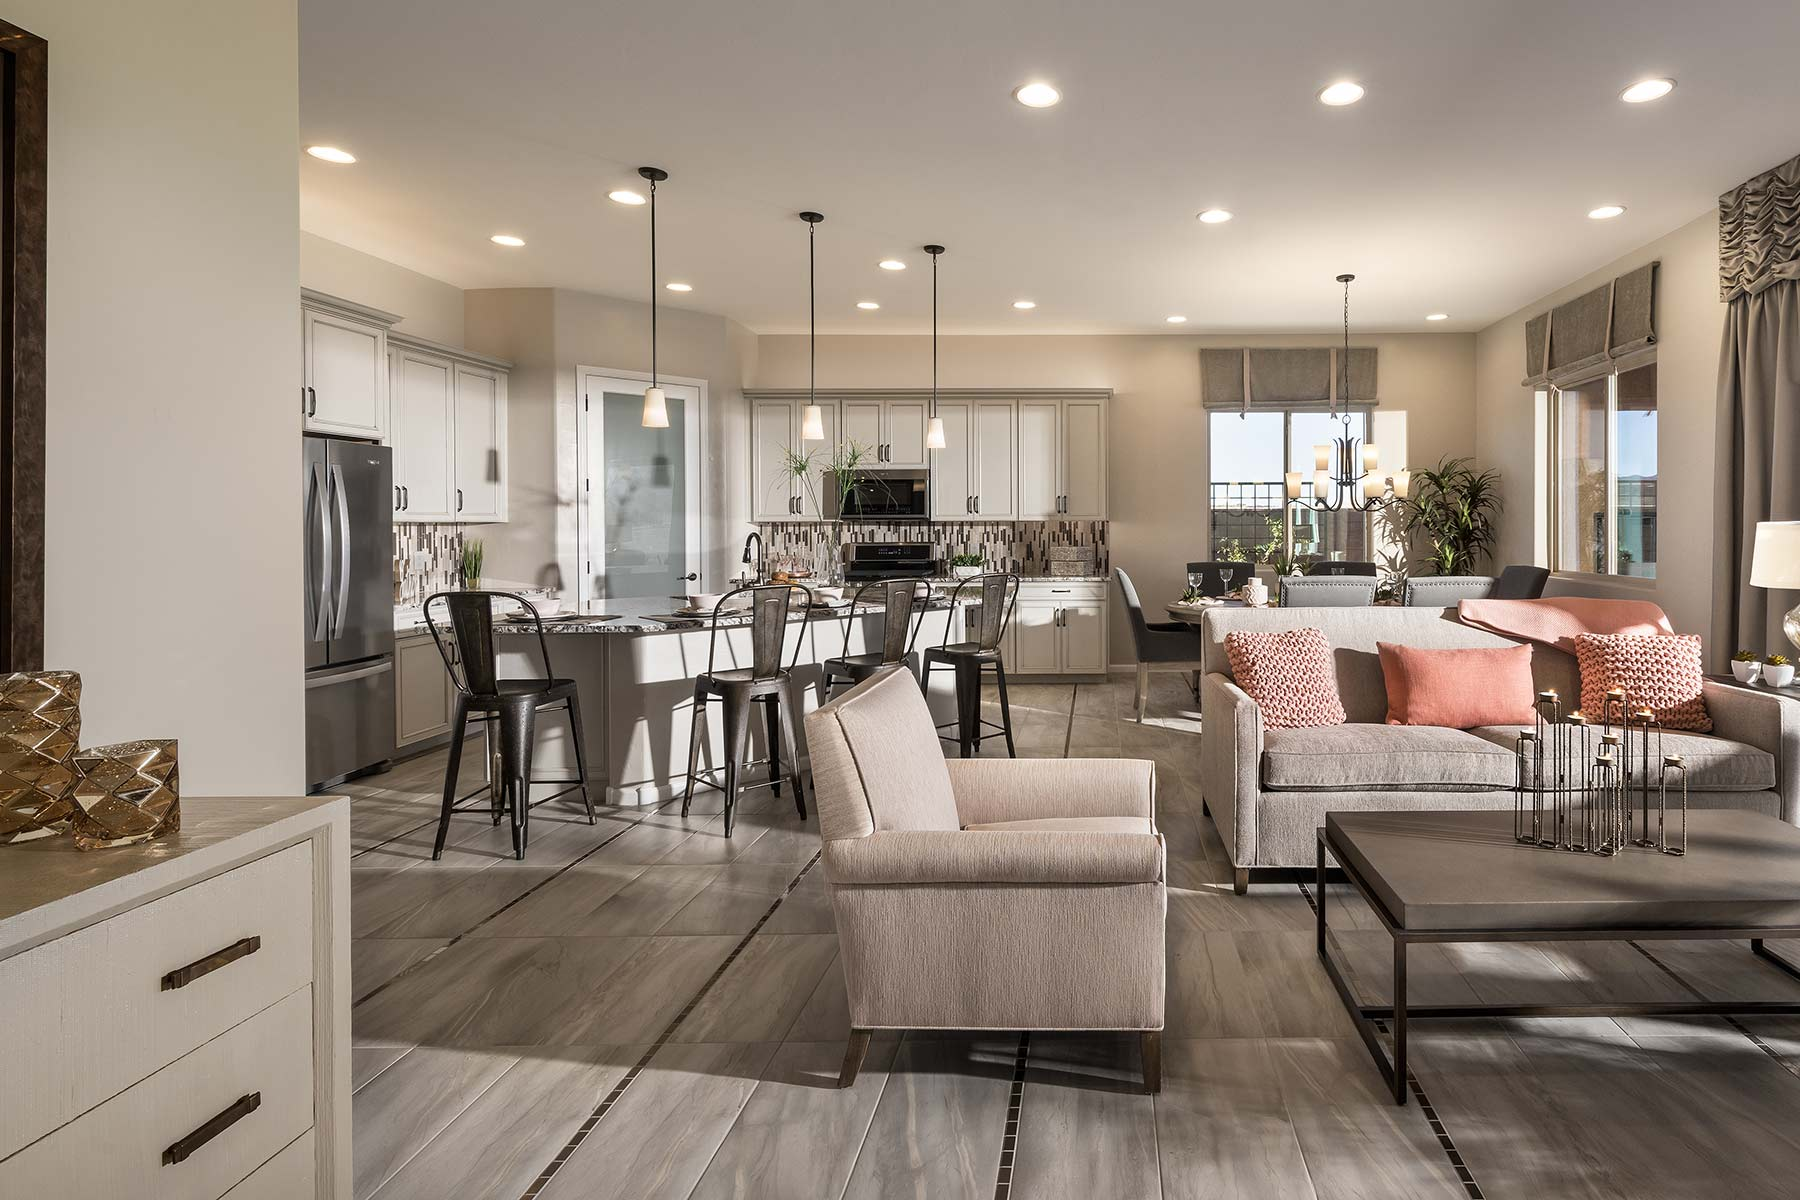 Aspect Plan Greatroom at Viewpointe at Vistoso Trails in Oro Valley Arizona by Mattamy Homes